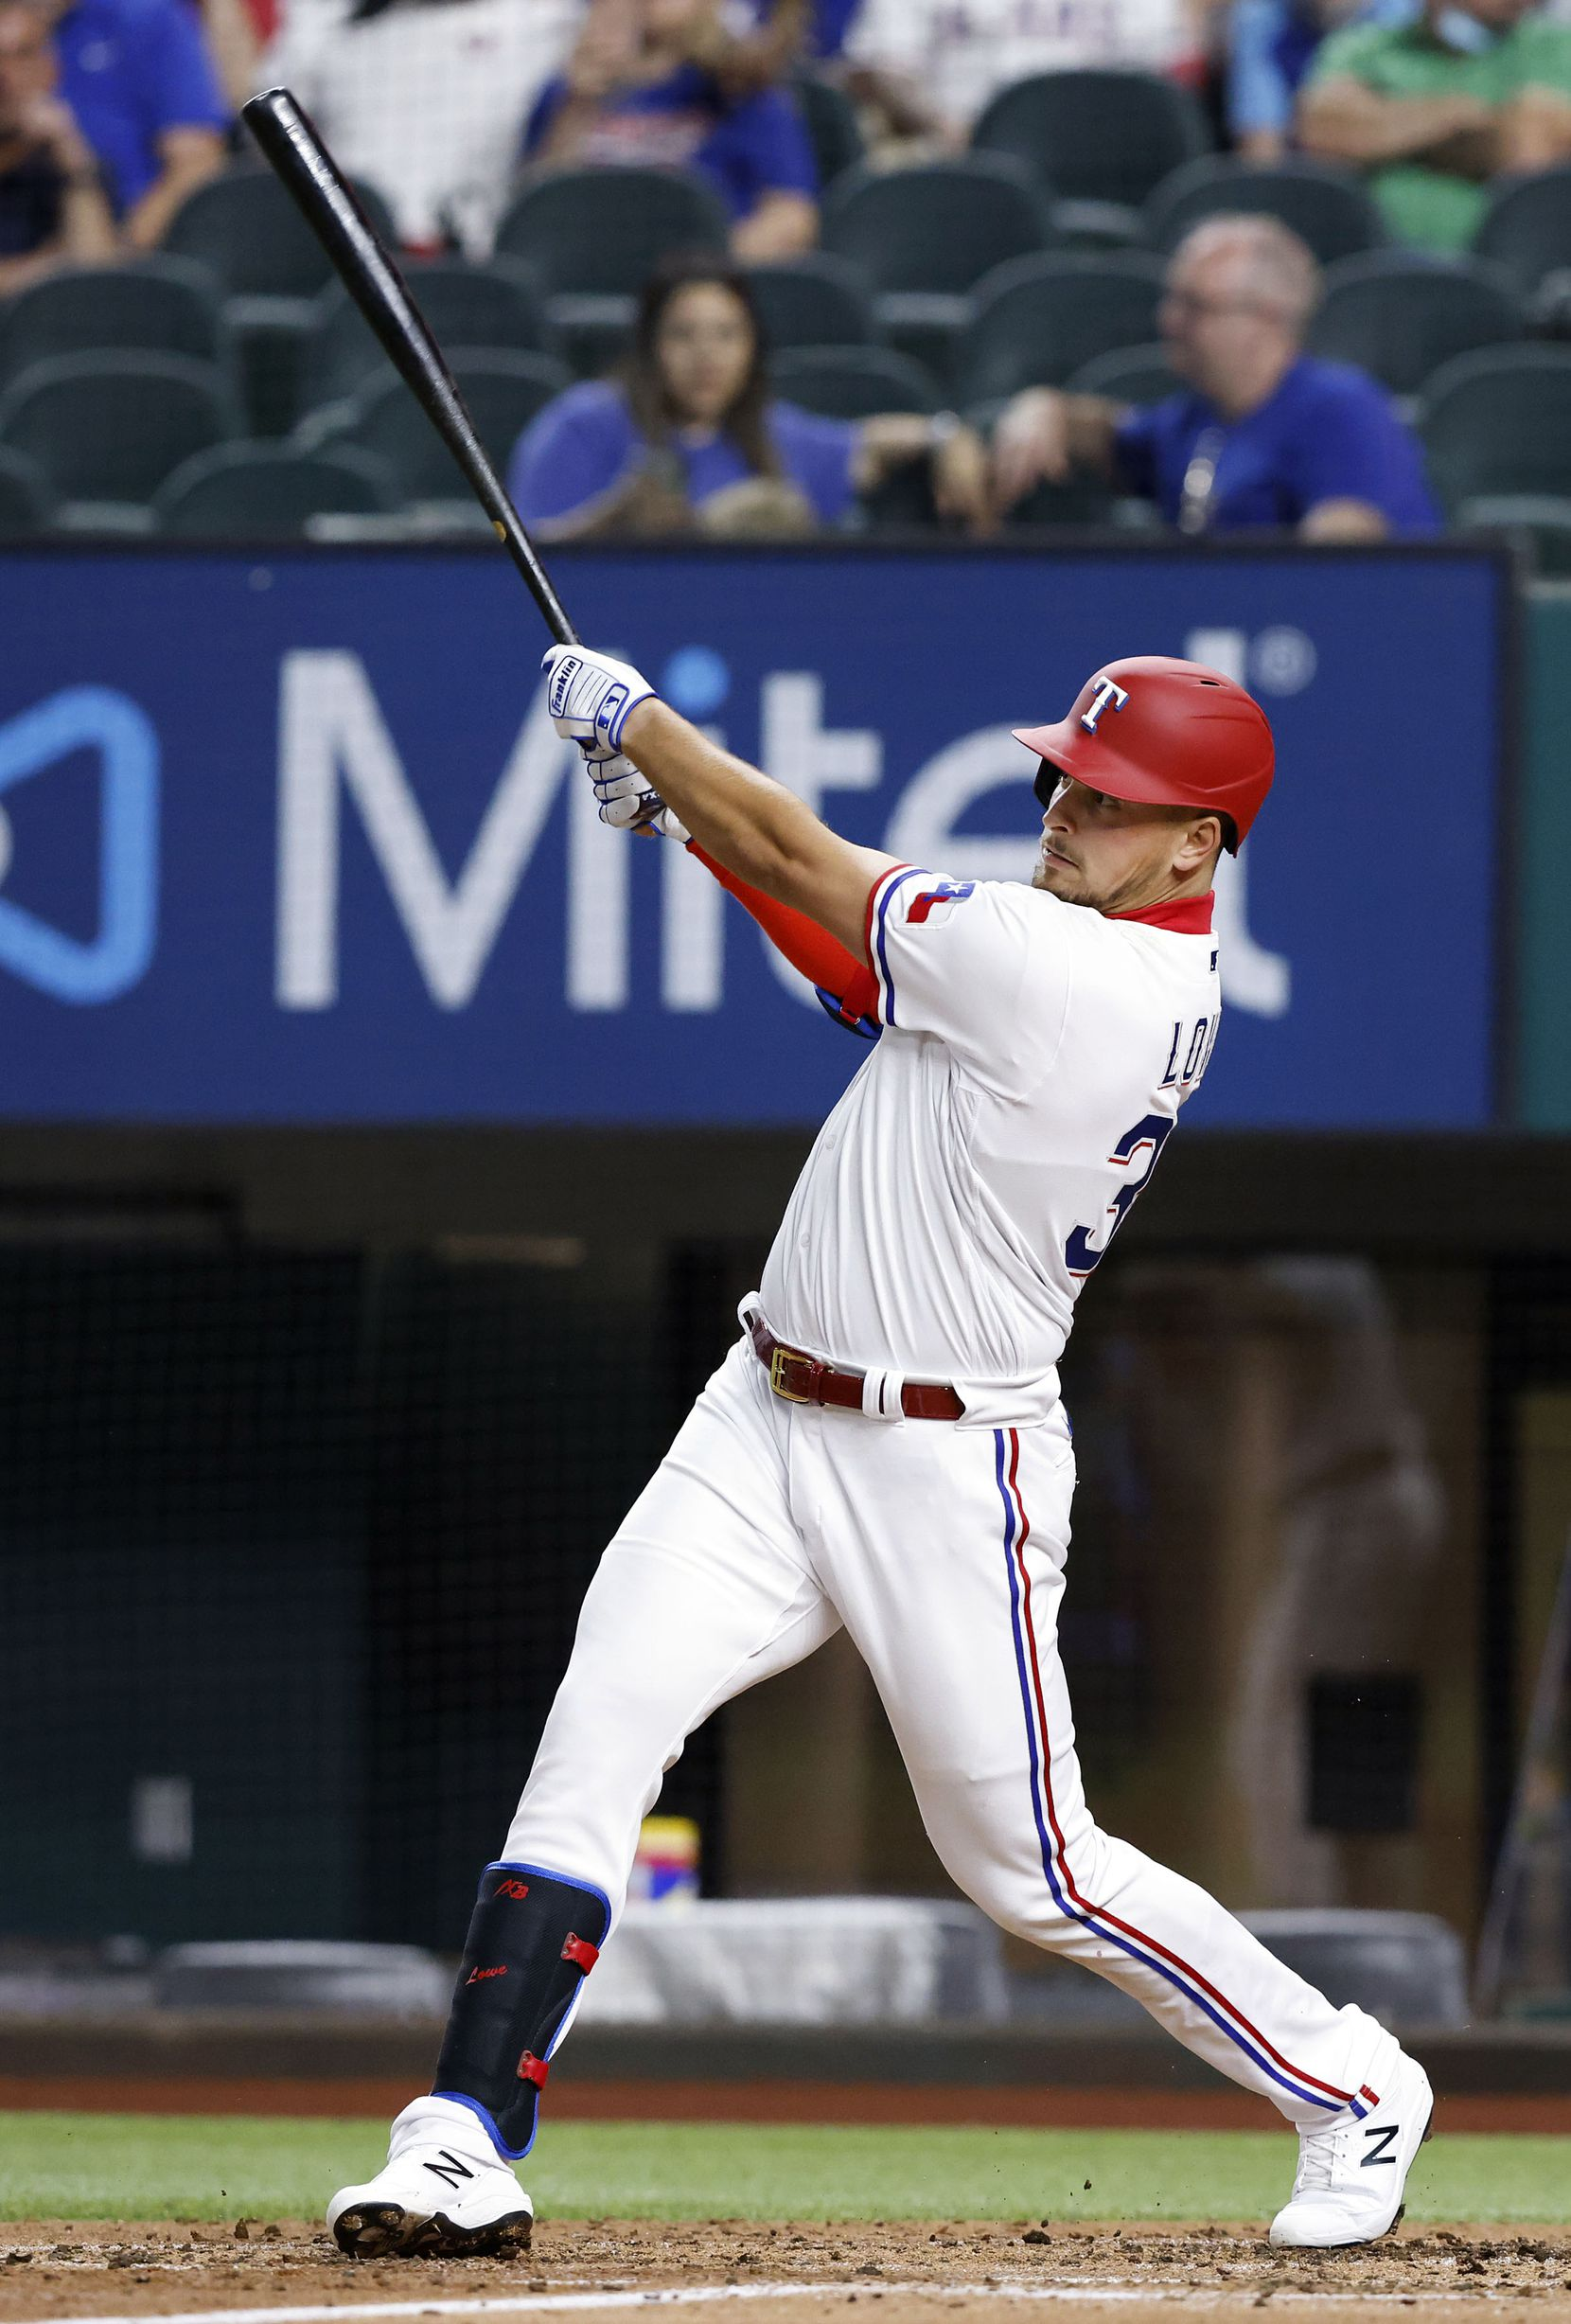 Texas Rangers batter Nate Lowe (30) connects on a two-run homer during third inning against the Toronto Blue Jays at Globe Life Field in Arlington, Tuesday, April 7, 2021. (Tom Fox/The Dallas Morning News)